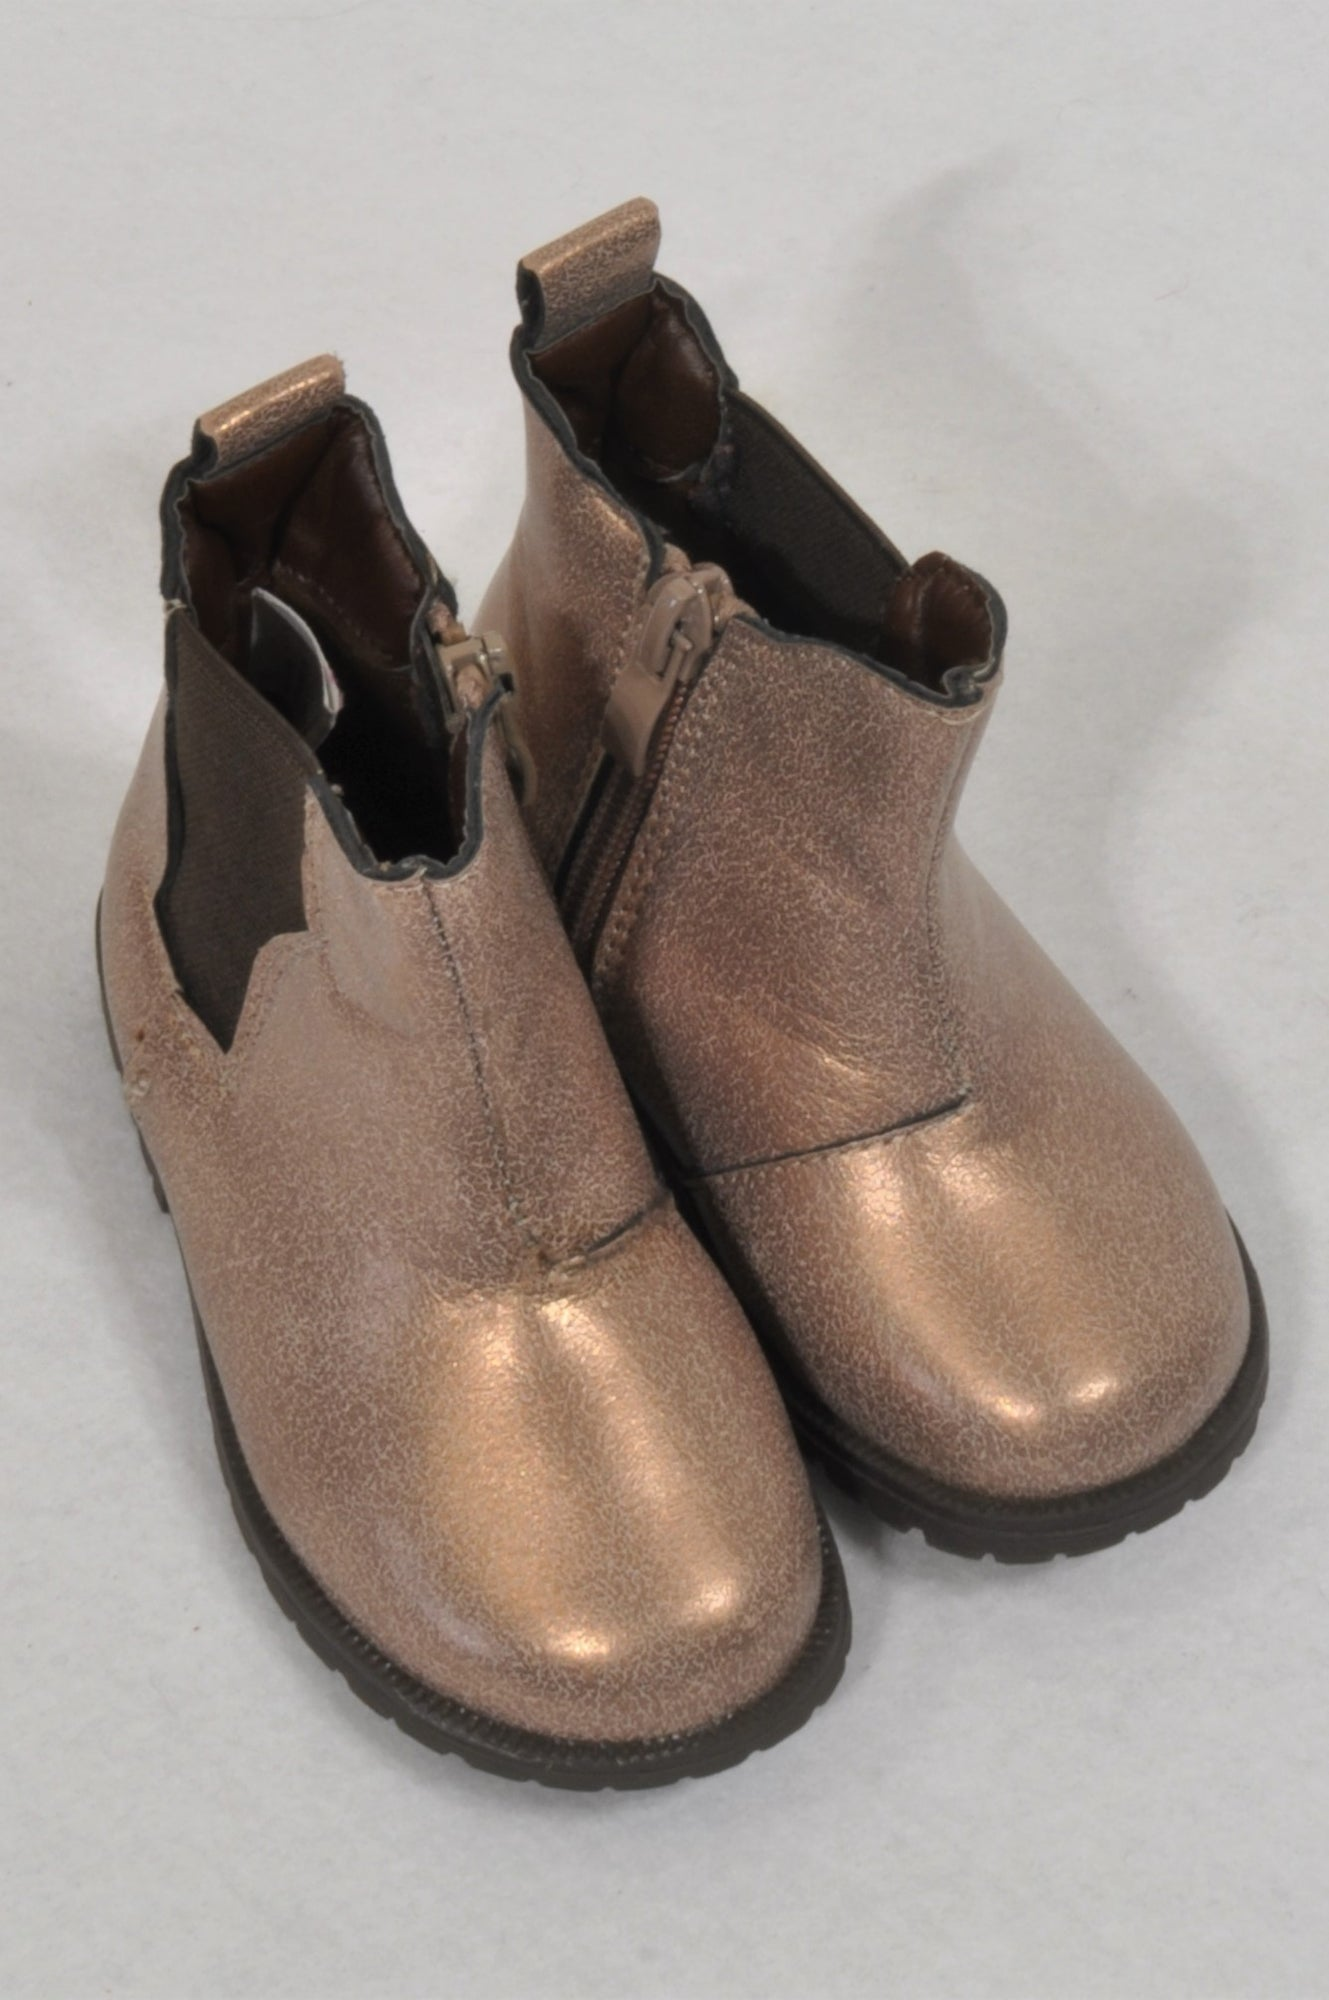 8498959f2f30 New Woolworths Size 4 Golden Brown Zipper Boots Girls 12-18 months – Once  More